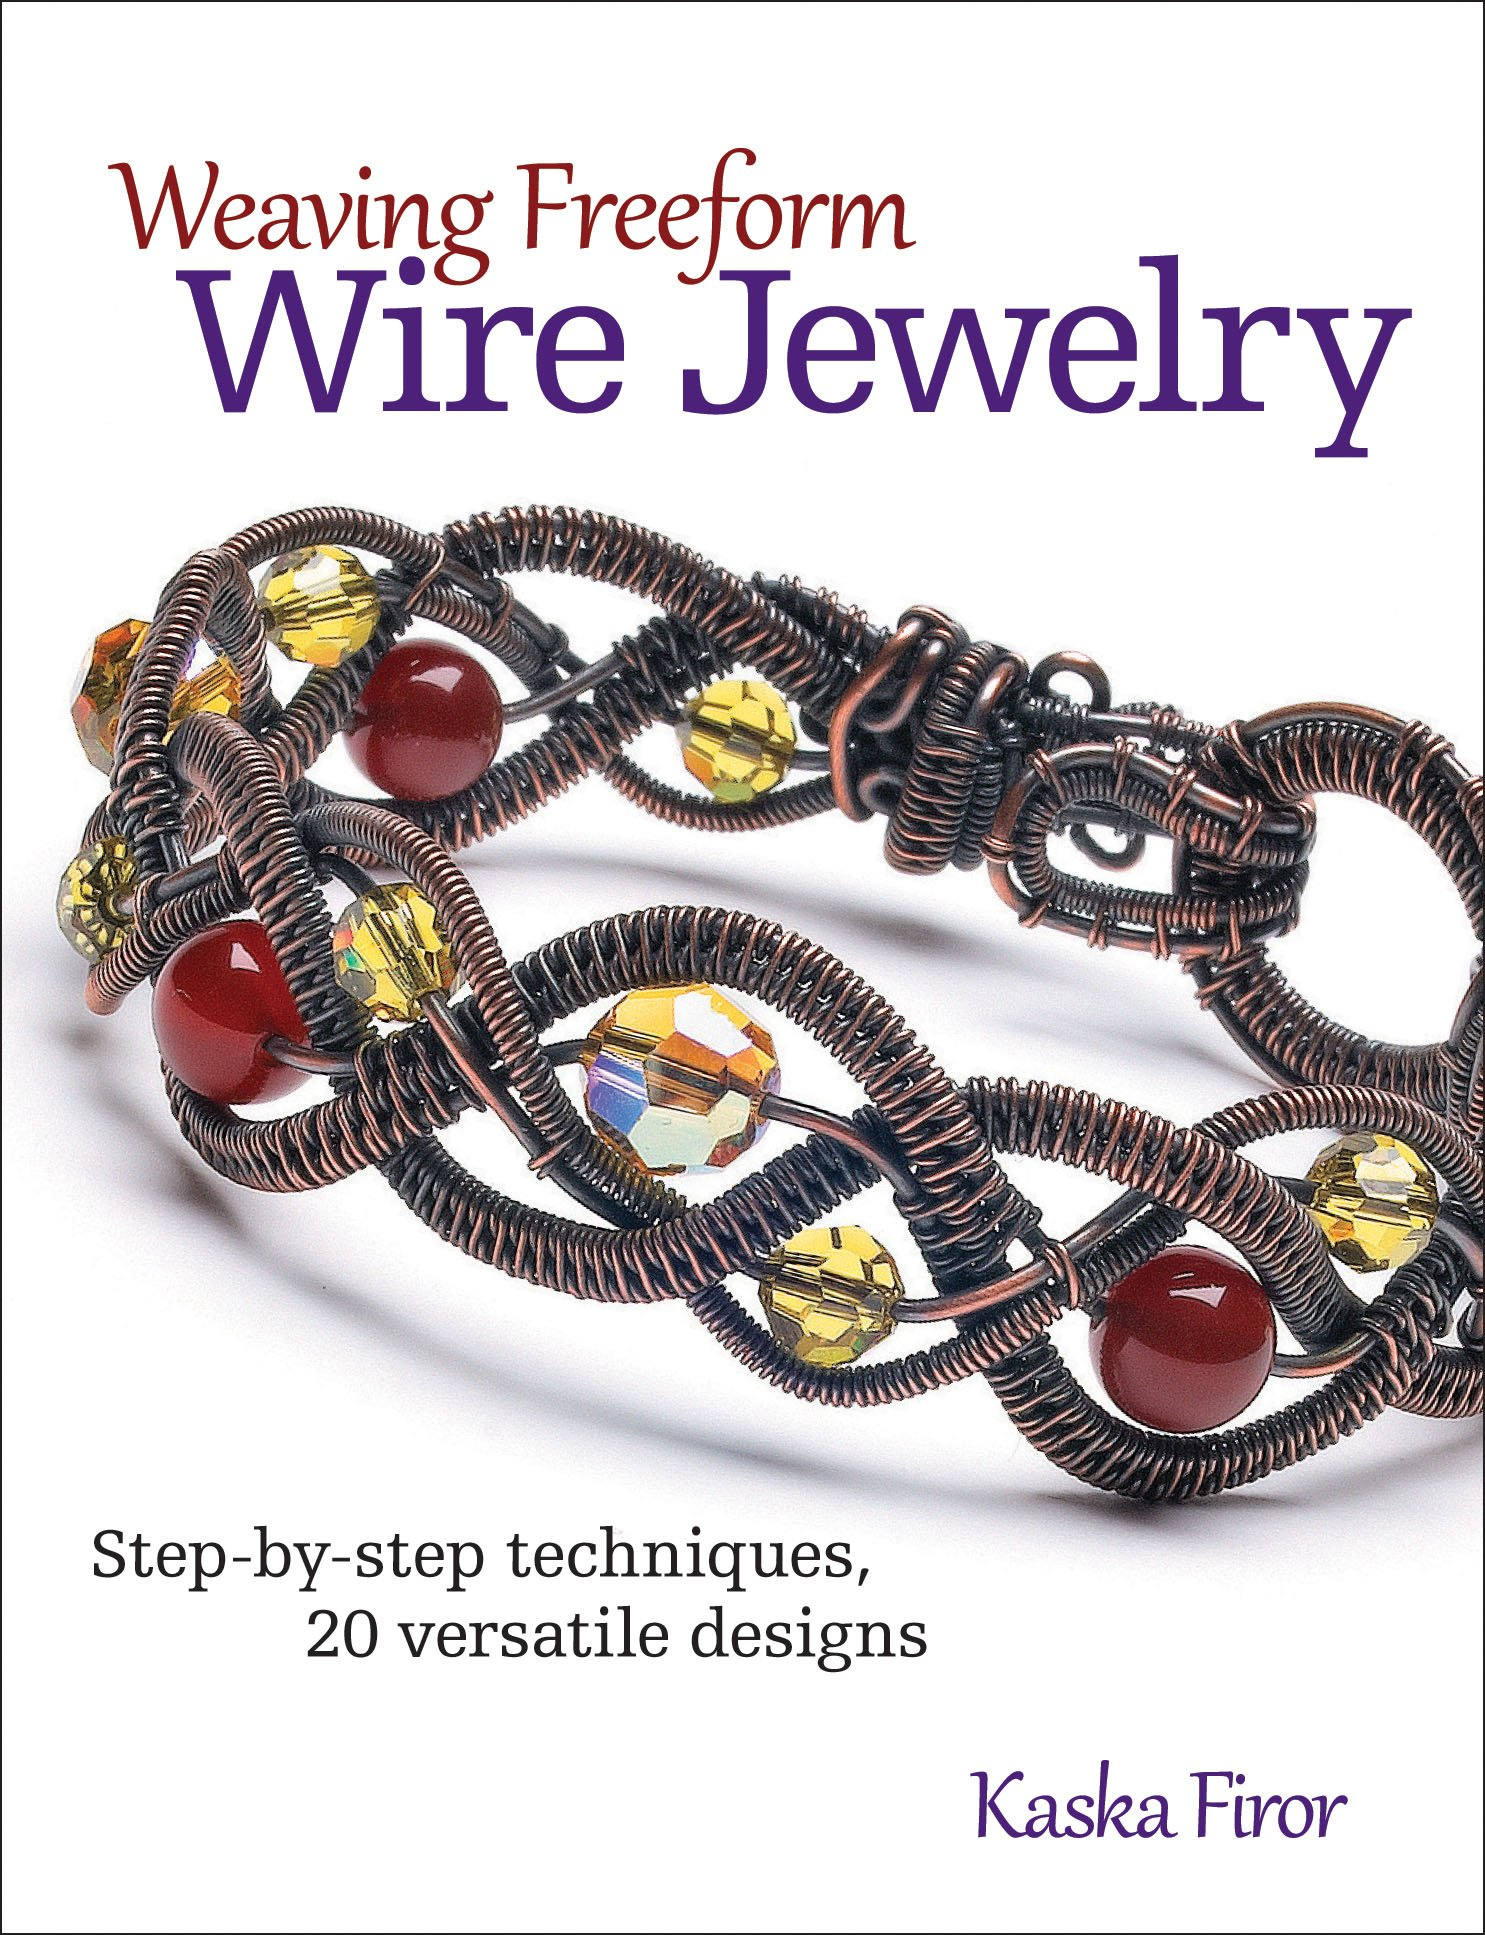 Weaving Freeform Wire Jewelry: Step-by-Step Techniques, 20 Versatile ...